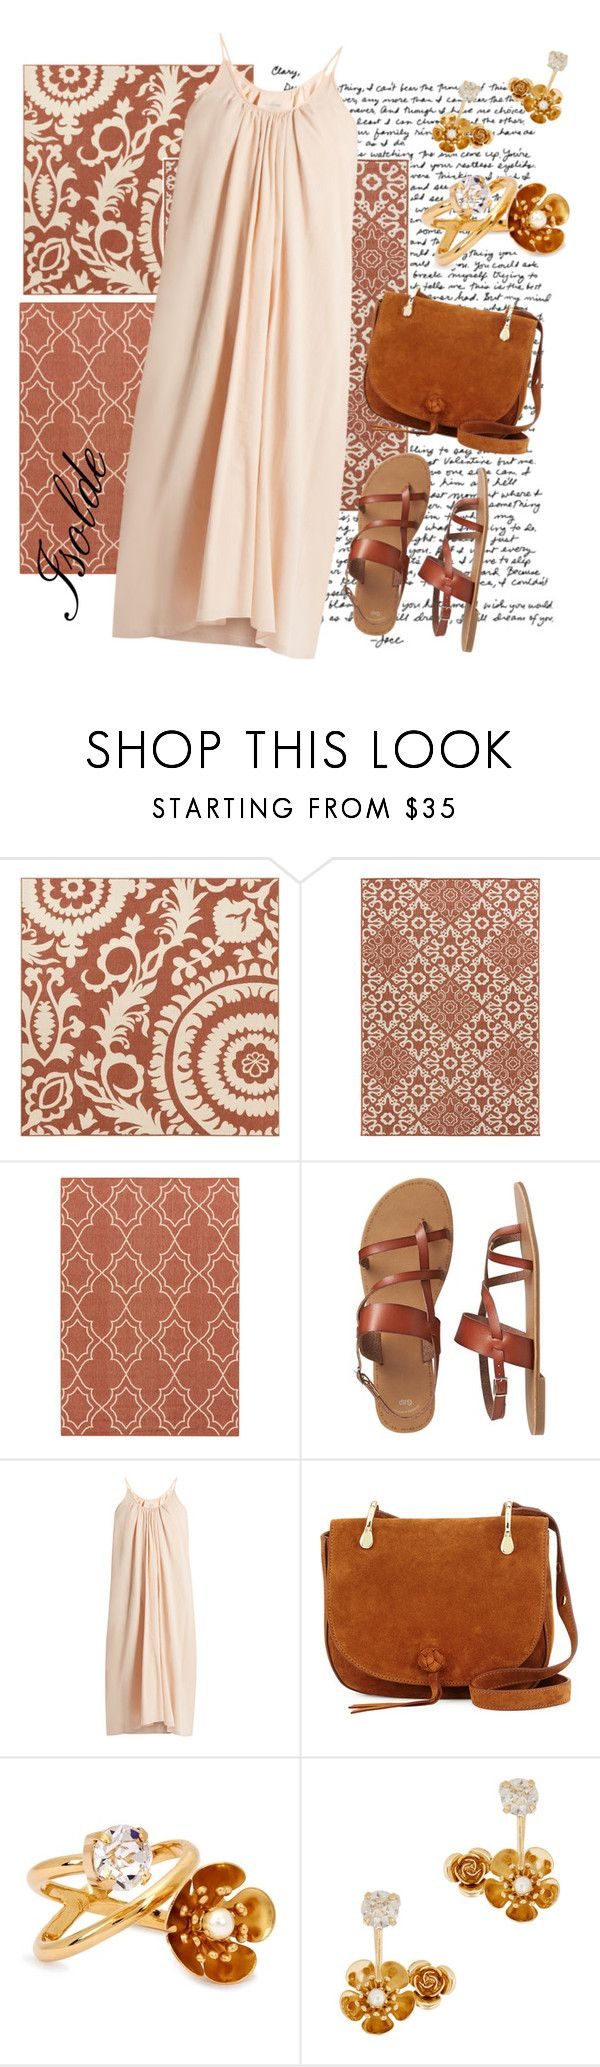 """""""Isolde"""" by mia-de-neef ❤ liked on Polyvore featuring Surya, Gap, Loup Charmant, Elizabeth and James and CA&LOU"""